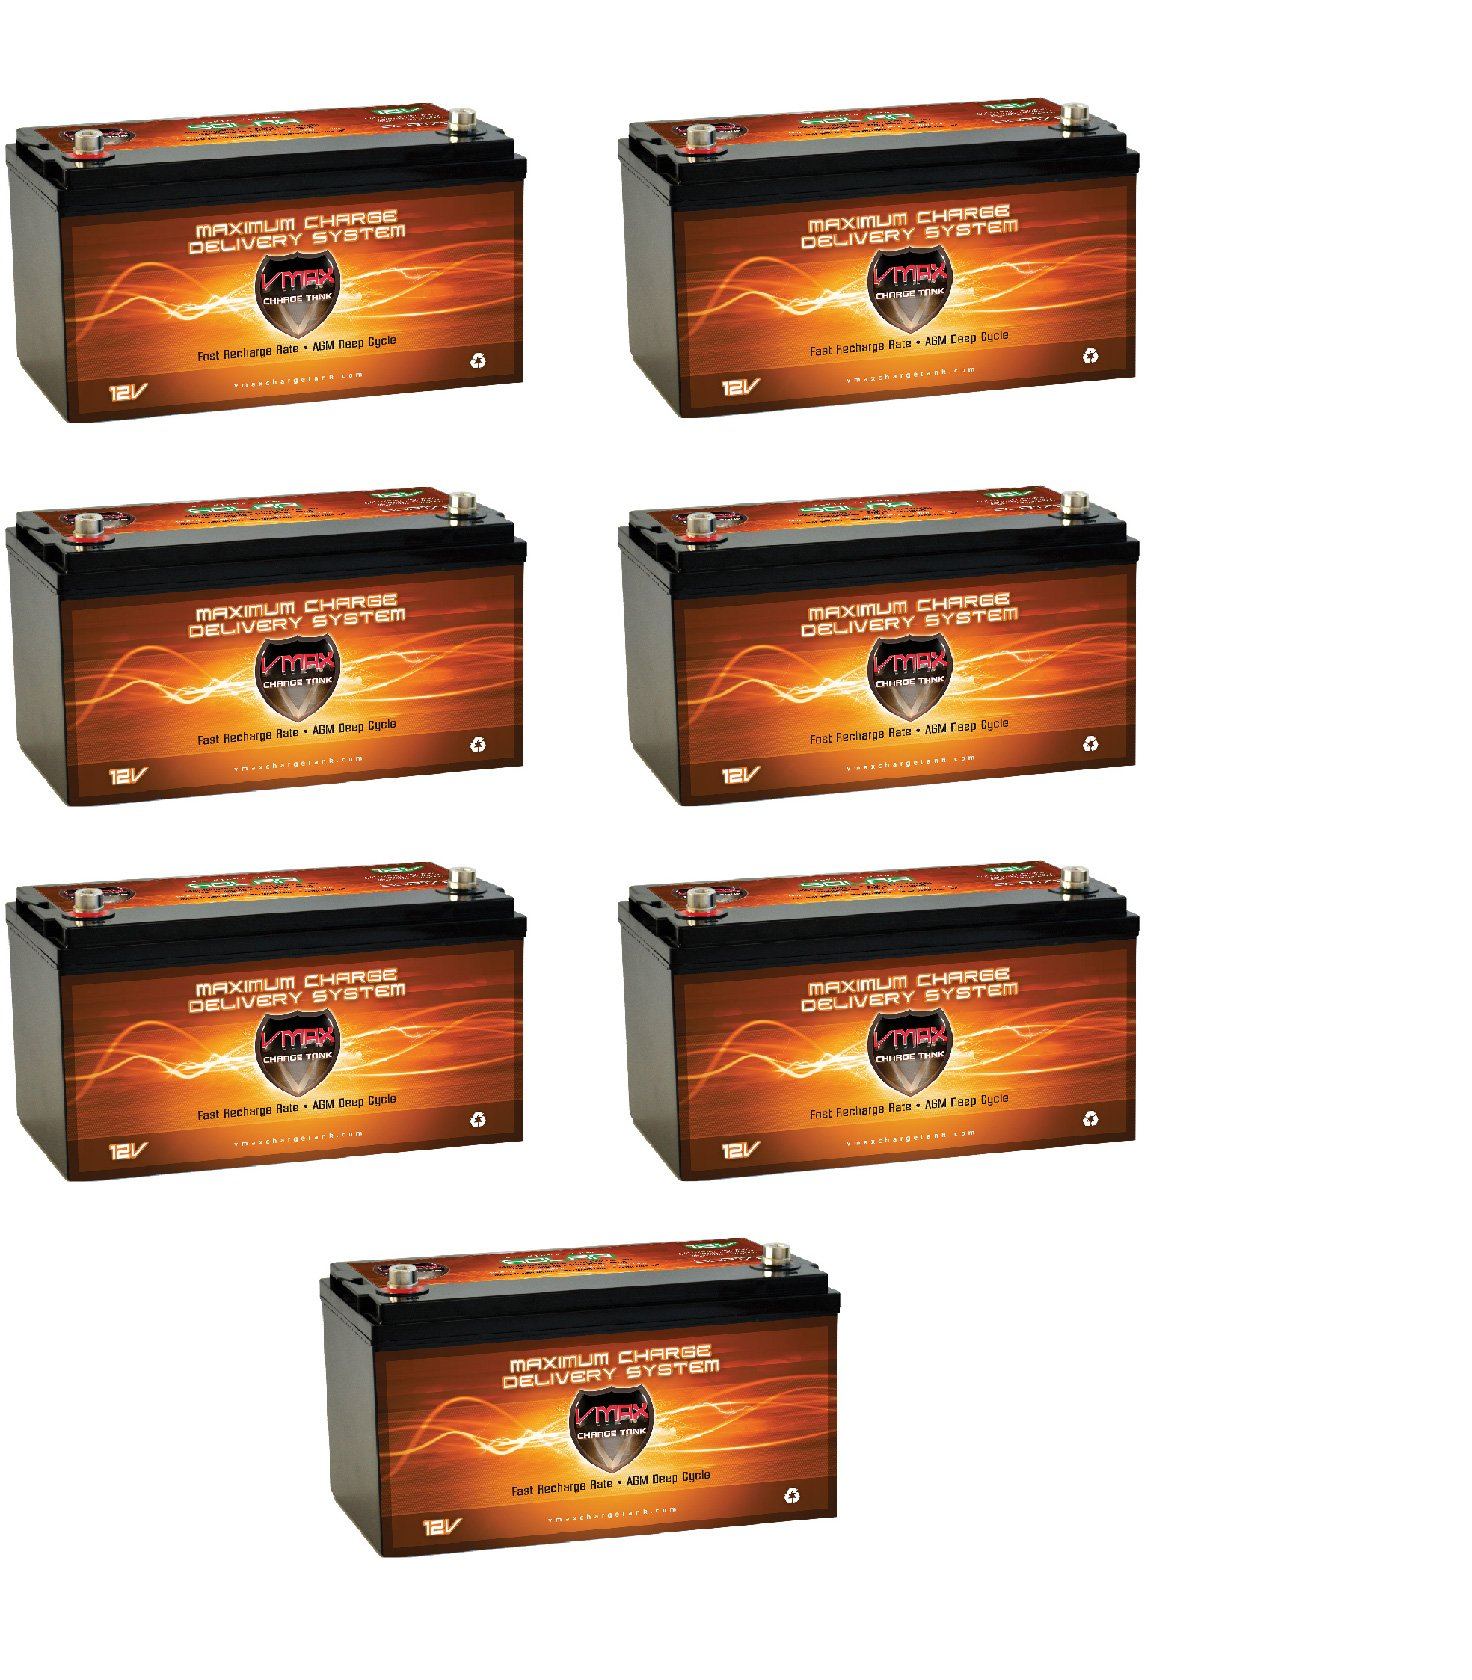 QTY 7 Vmaxtanks VMAXSLR175 AGM deep cycle 12V 1225AH battery for Use with PV Solar Panel wind turbine gas or electric power backup generator or smart charger for off grid sump pump lift winch pallet jack and any other heavy duty application by VMAX Solar